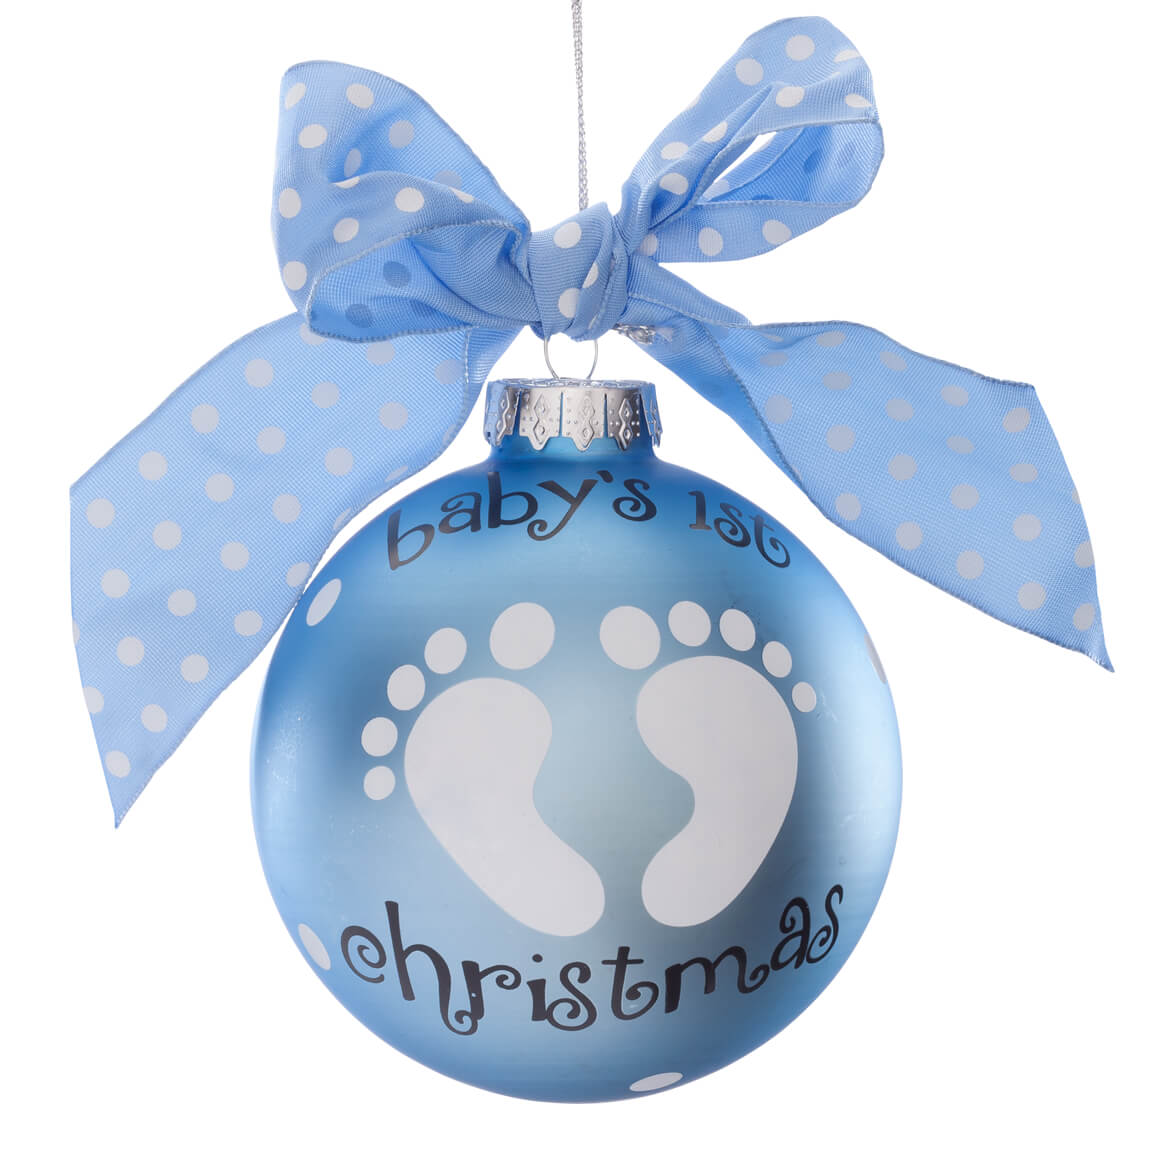 Personalized quot baby s st christmas glass ball ornament